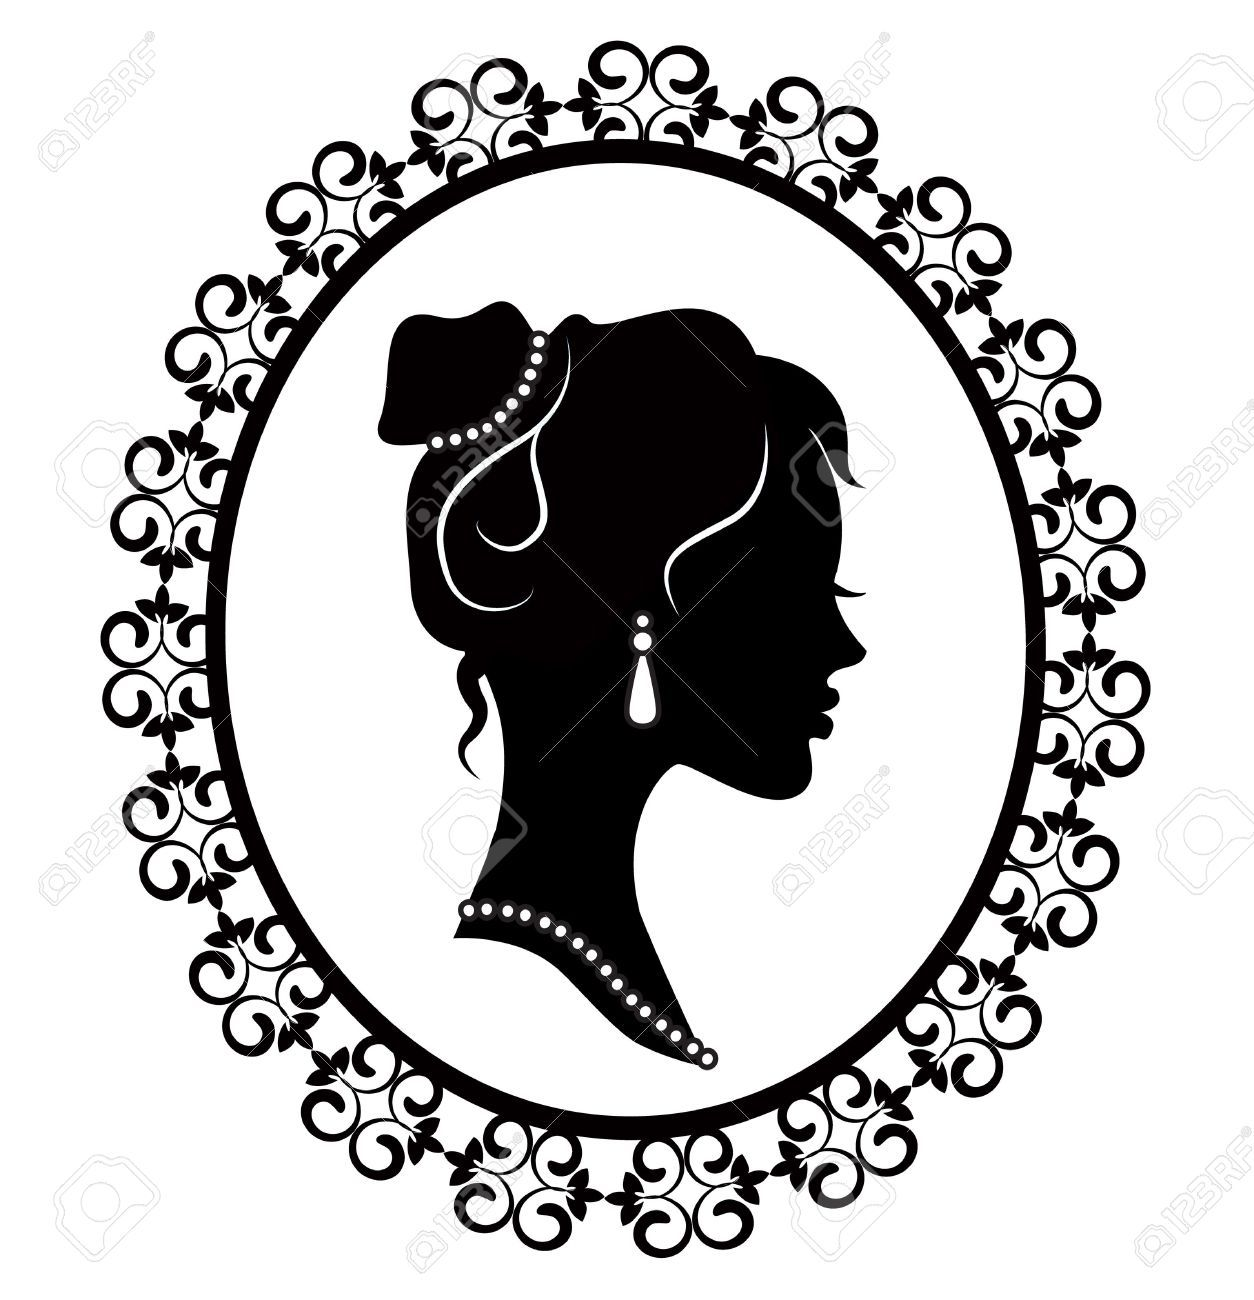 Retro Silhouette Profile Of A Young Girl In A